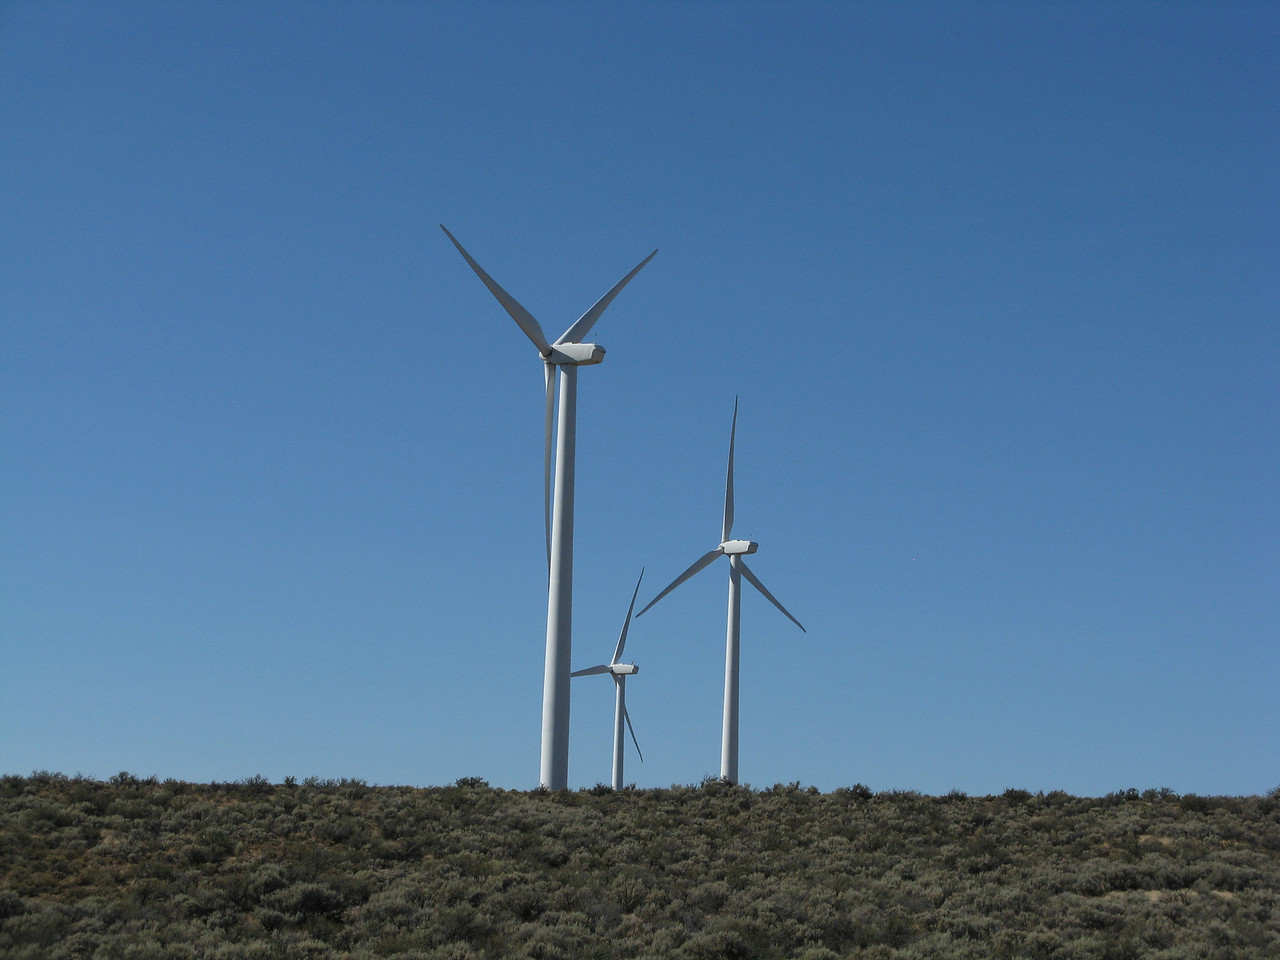 Located near Ellensburg in Kittitas County, PSE's second wind facility — Wild Horse Wind and Solar Facility – has 149 turbines spanning across 10,000 acres. The facility can generate up to 273 megawatts of electricity, enough to serve more than 80,000 homes.